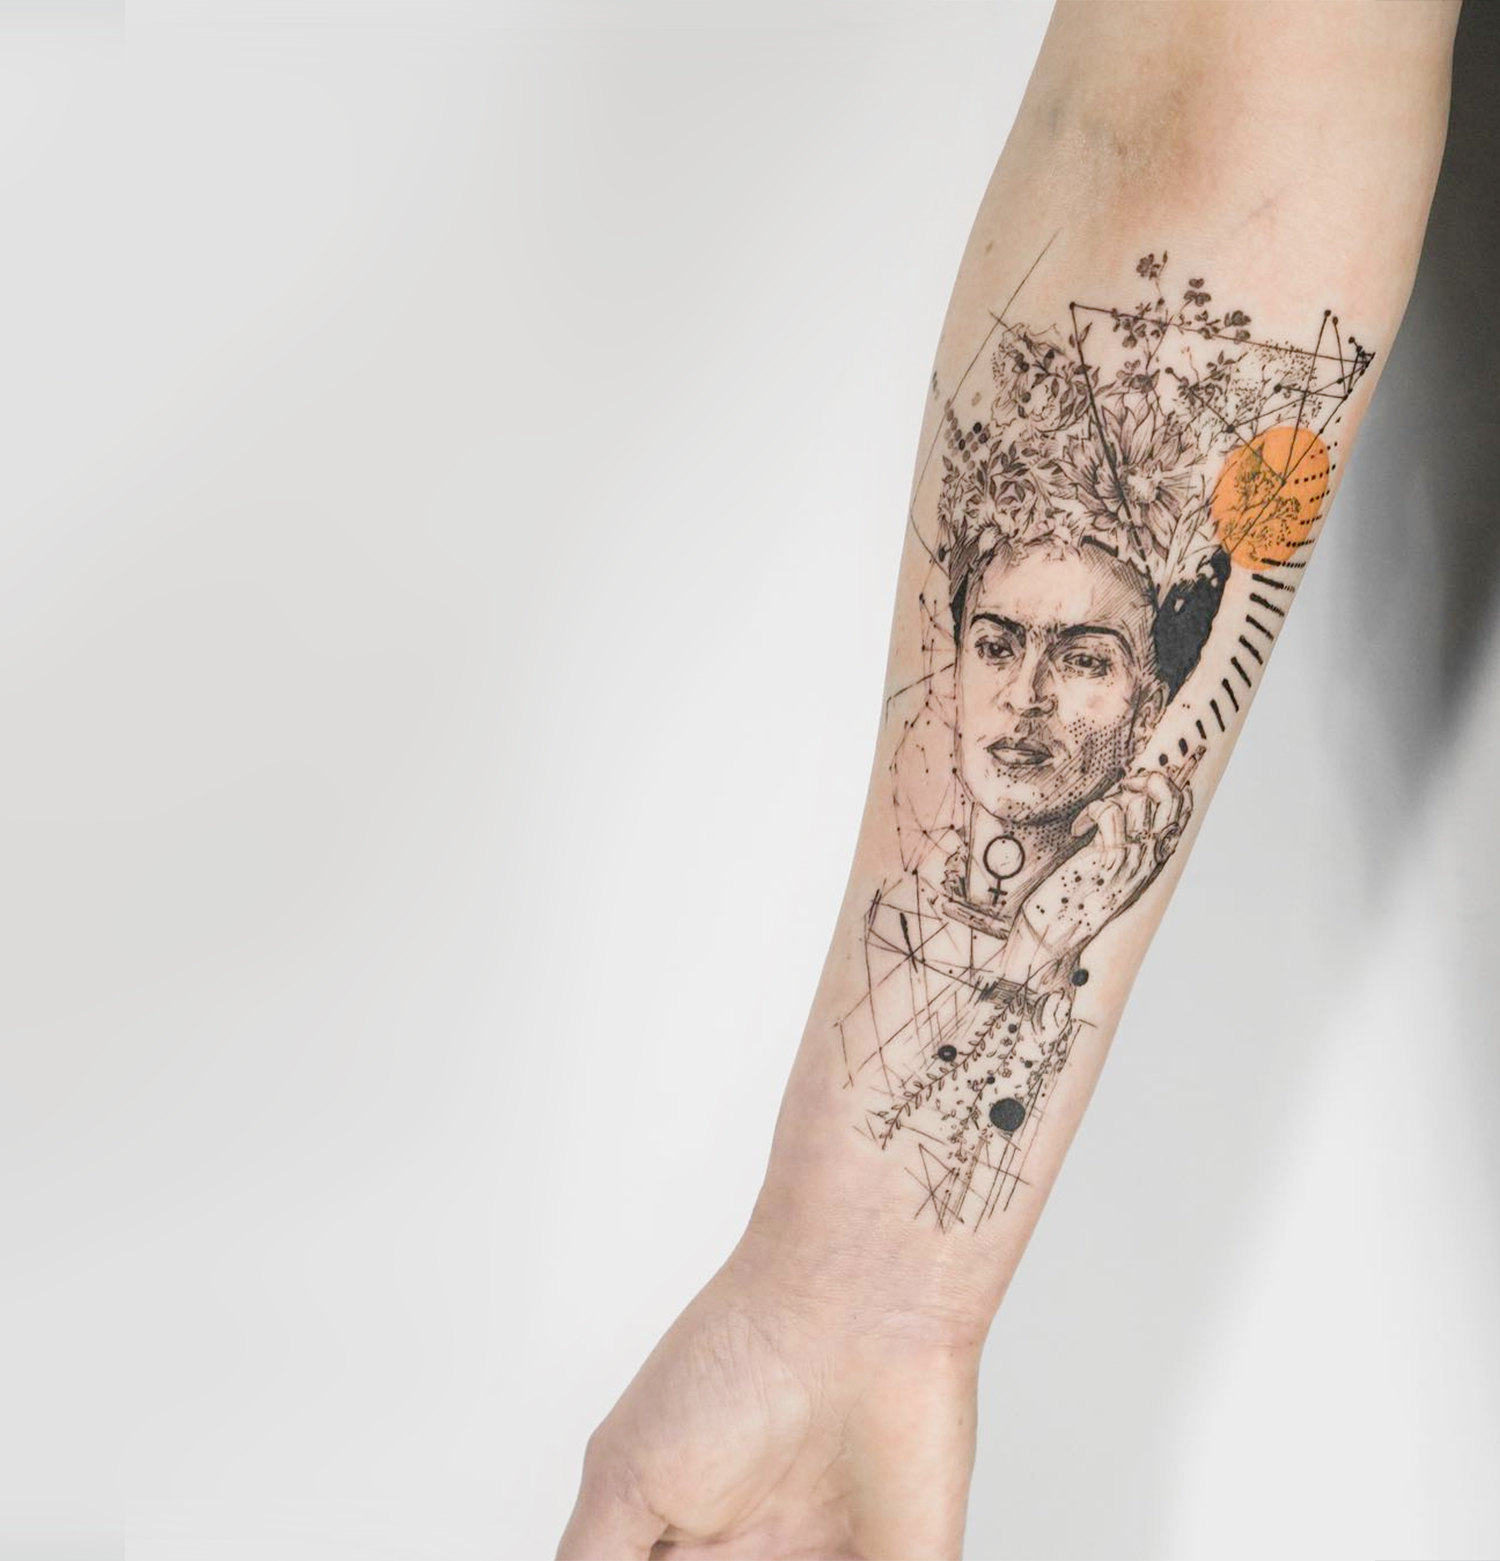 frida khalo portrait tattoo on arm